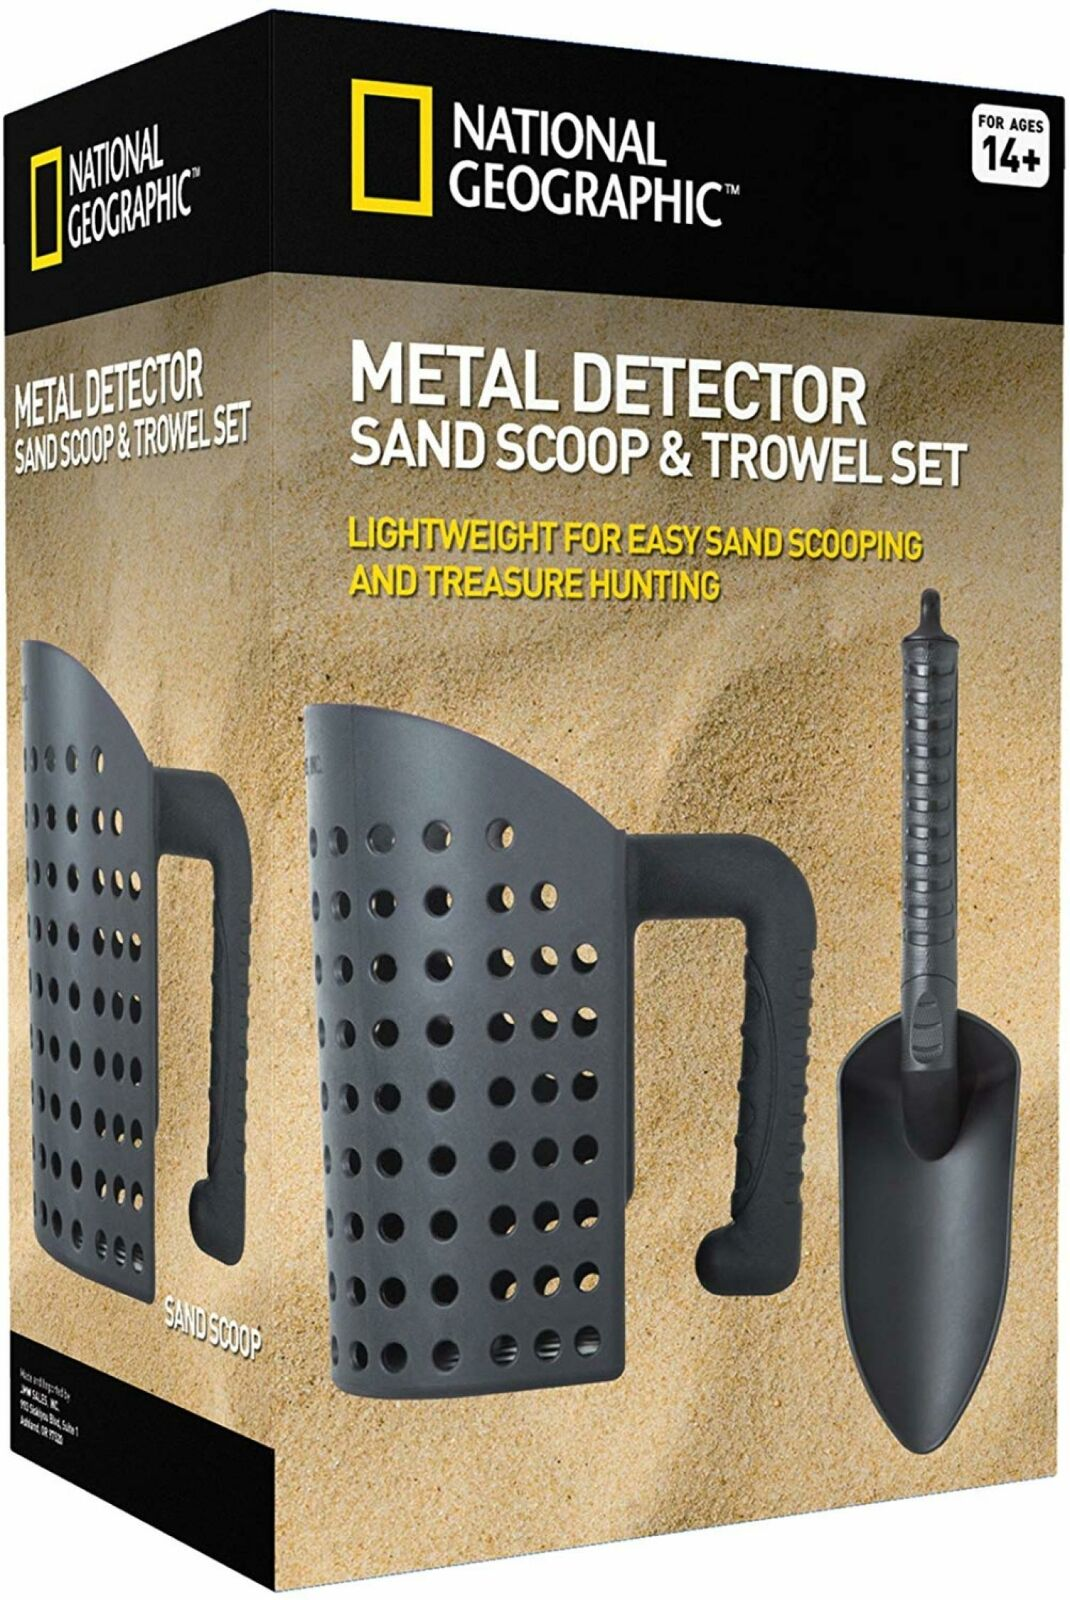 NATIONAL GEOGRAPHIC Sand Scoop and Shovel Accessories for Metal Detecting Other